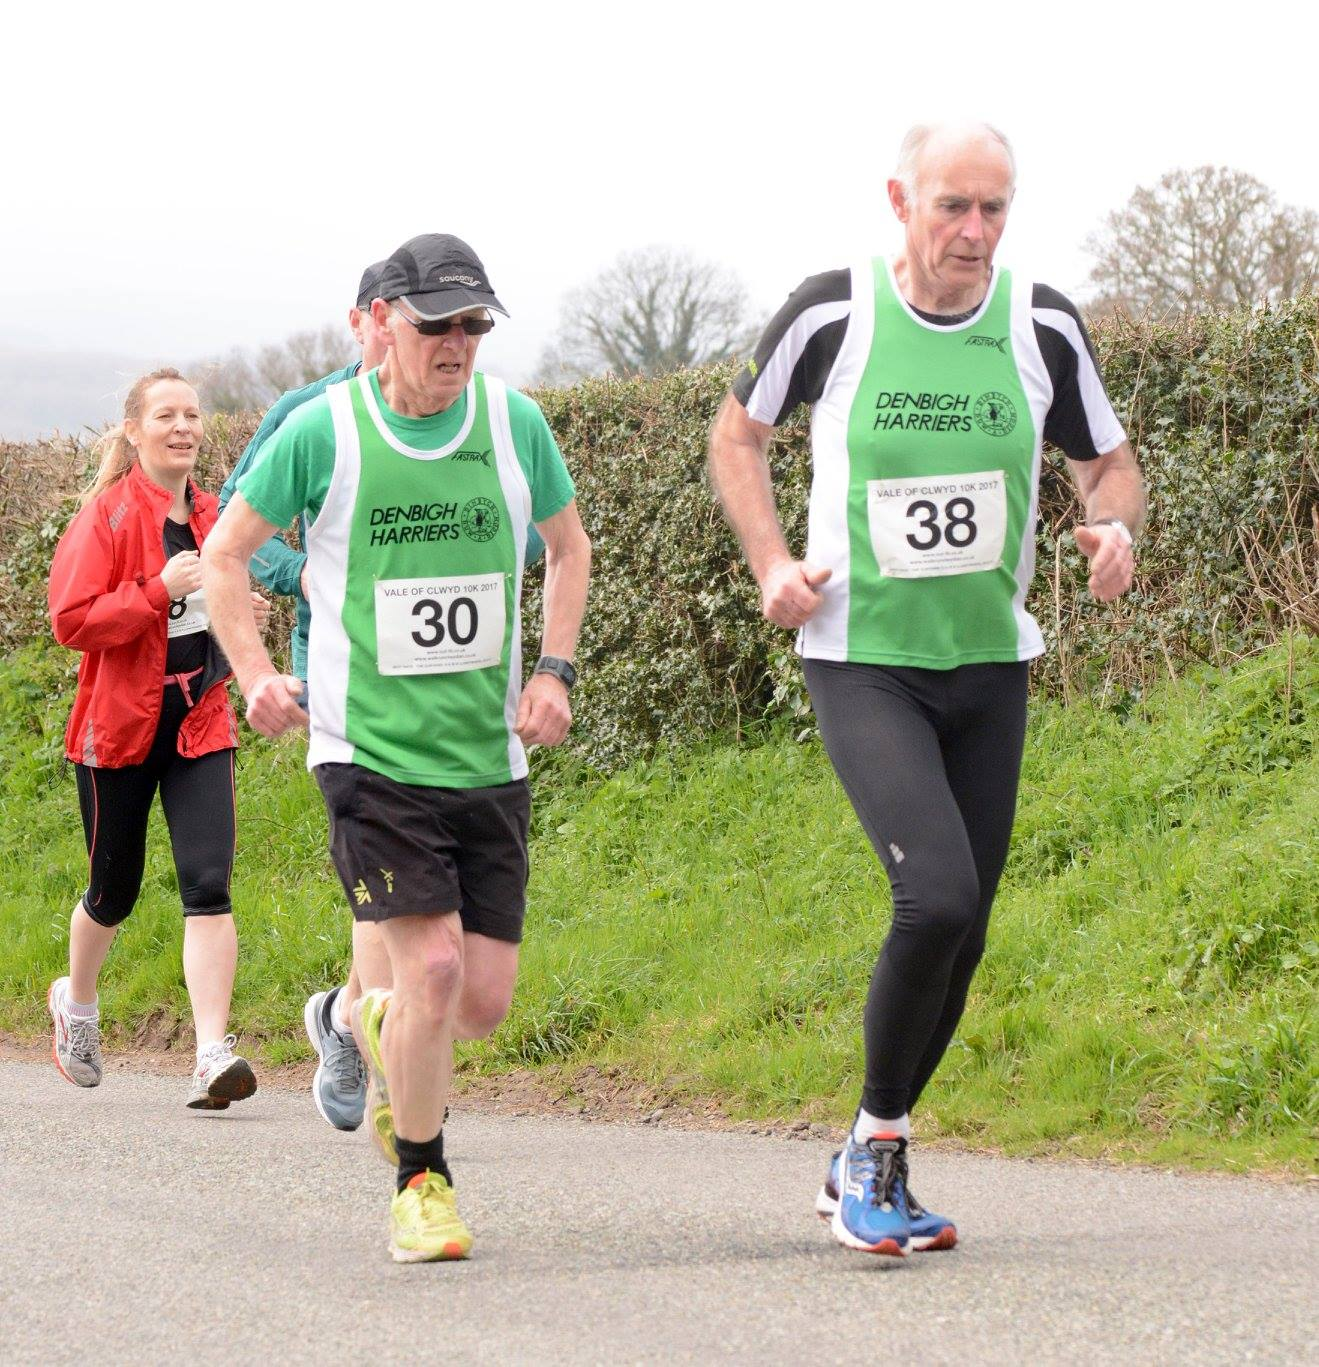 The Vale of Clwyd 5km & 10km